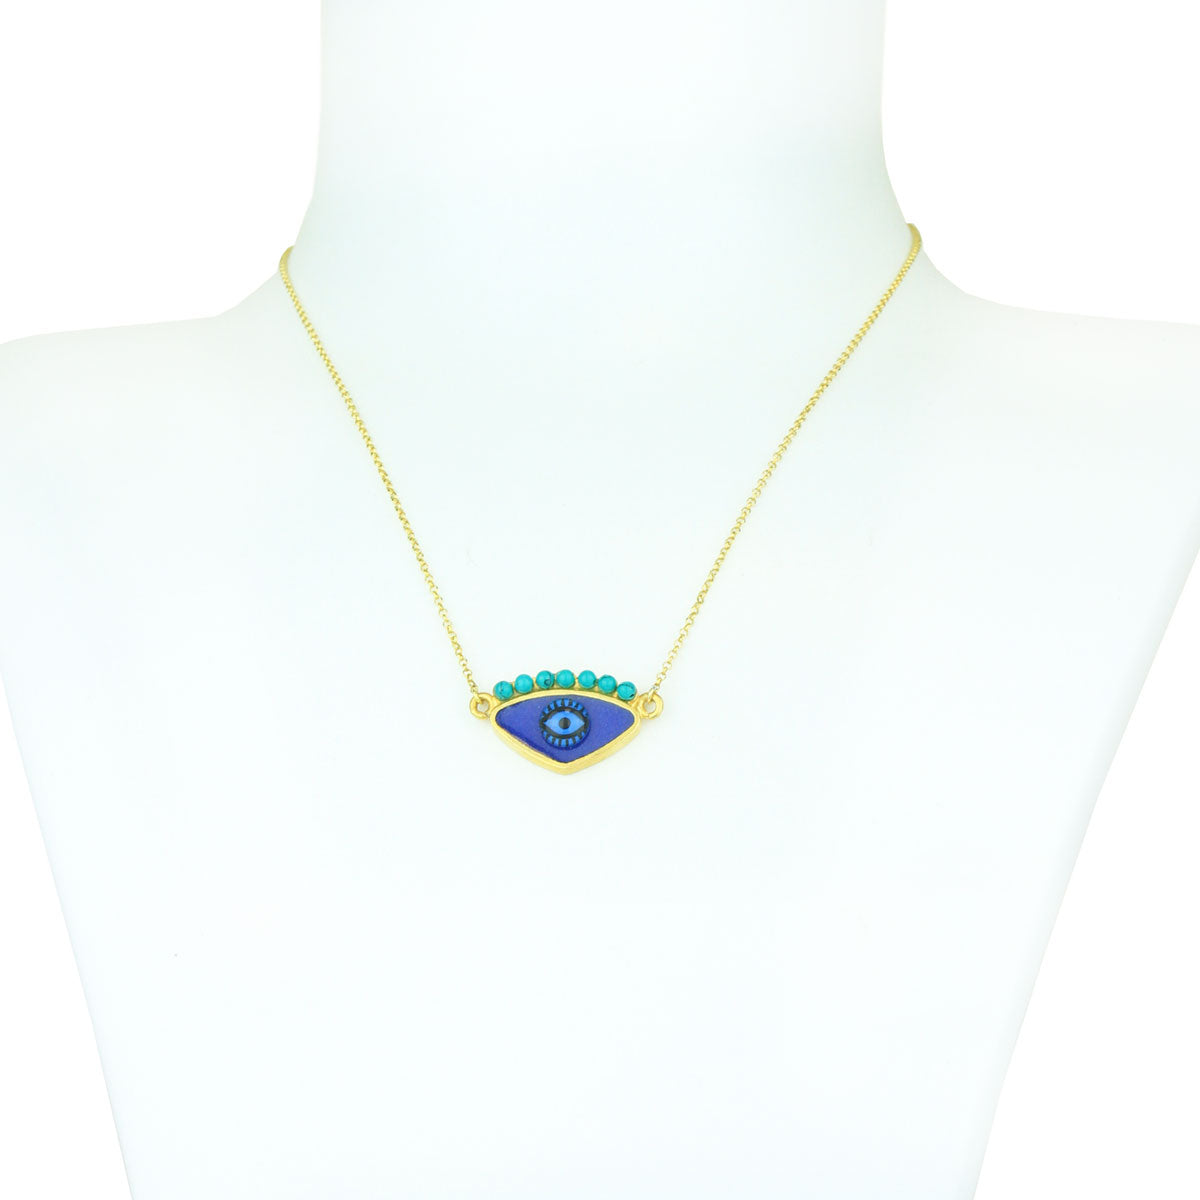 Gold Plated 925 Silver Blue Evil Eye Chain Short Necklace